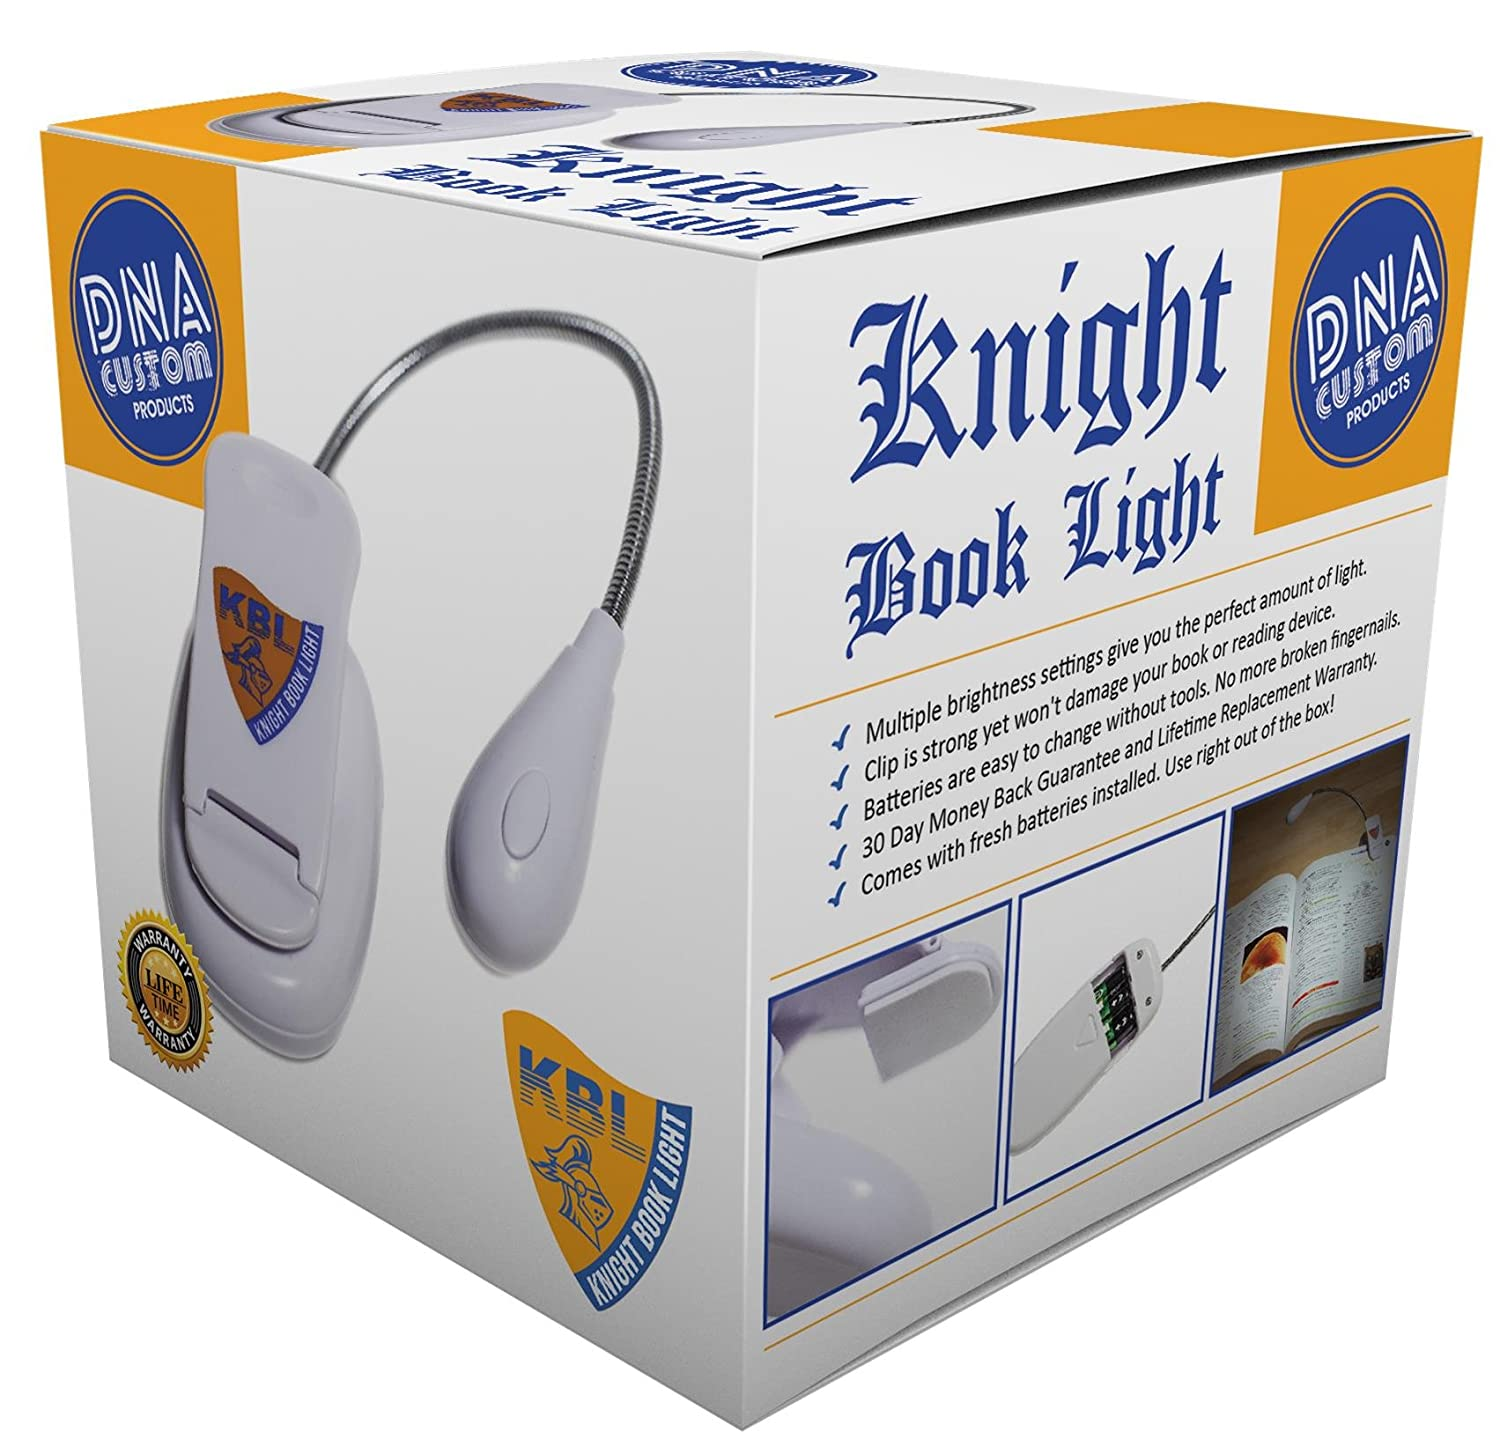 knight book light 2 led settings for reading in bed lightweight